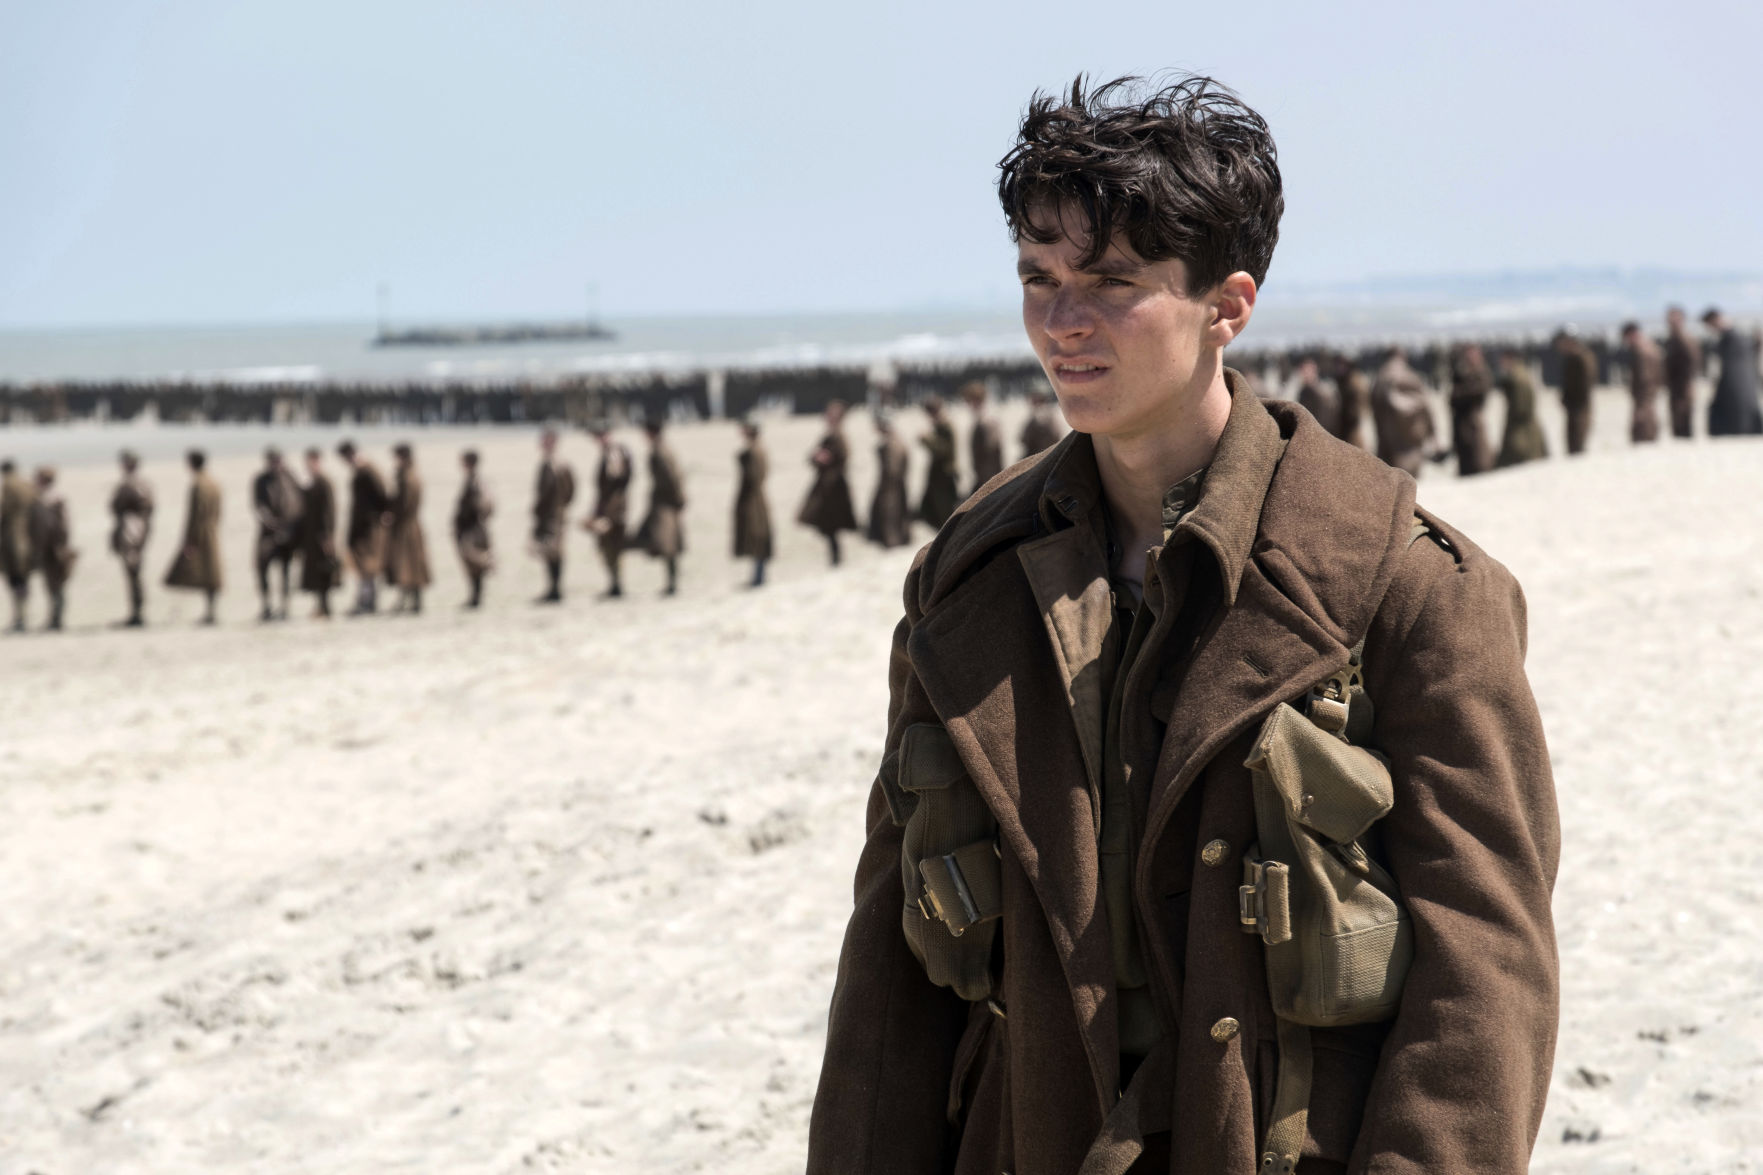 Cillian Murphy on his collaboration with Christopher Nolan in Dunkirk